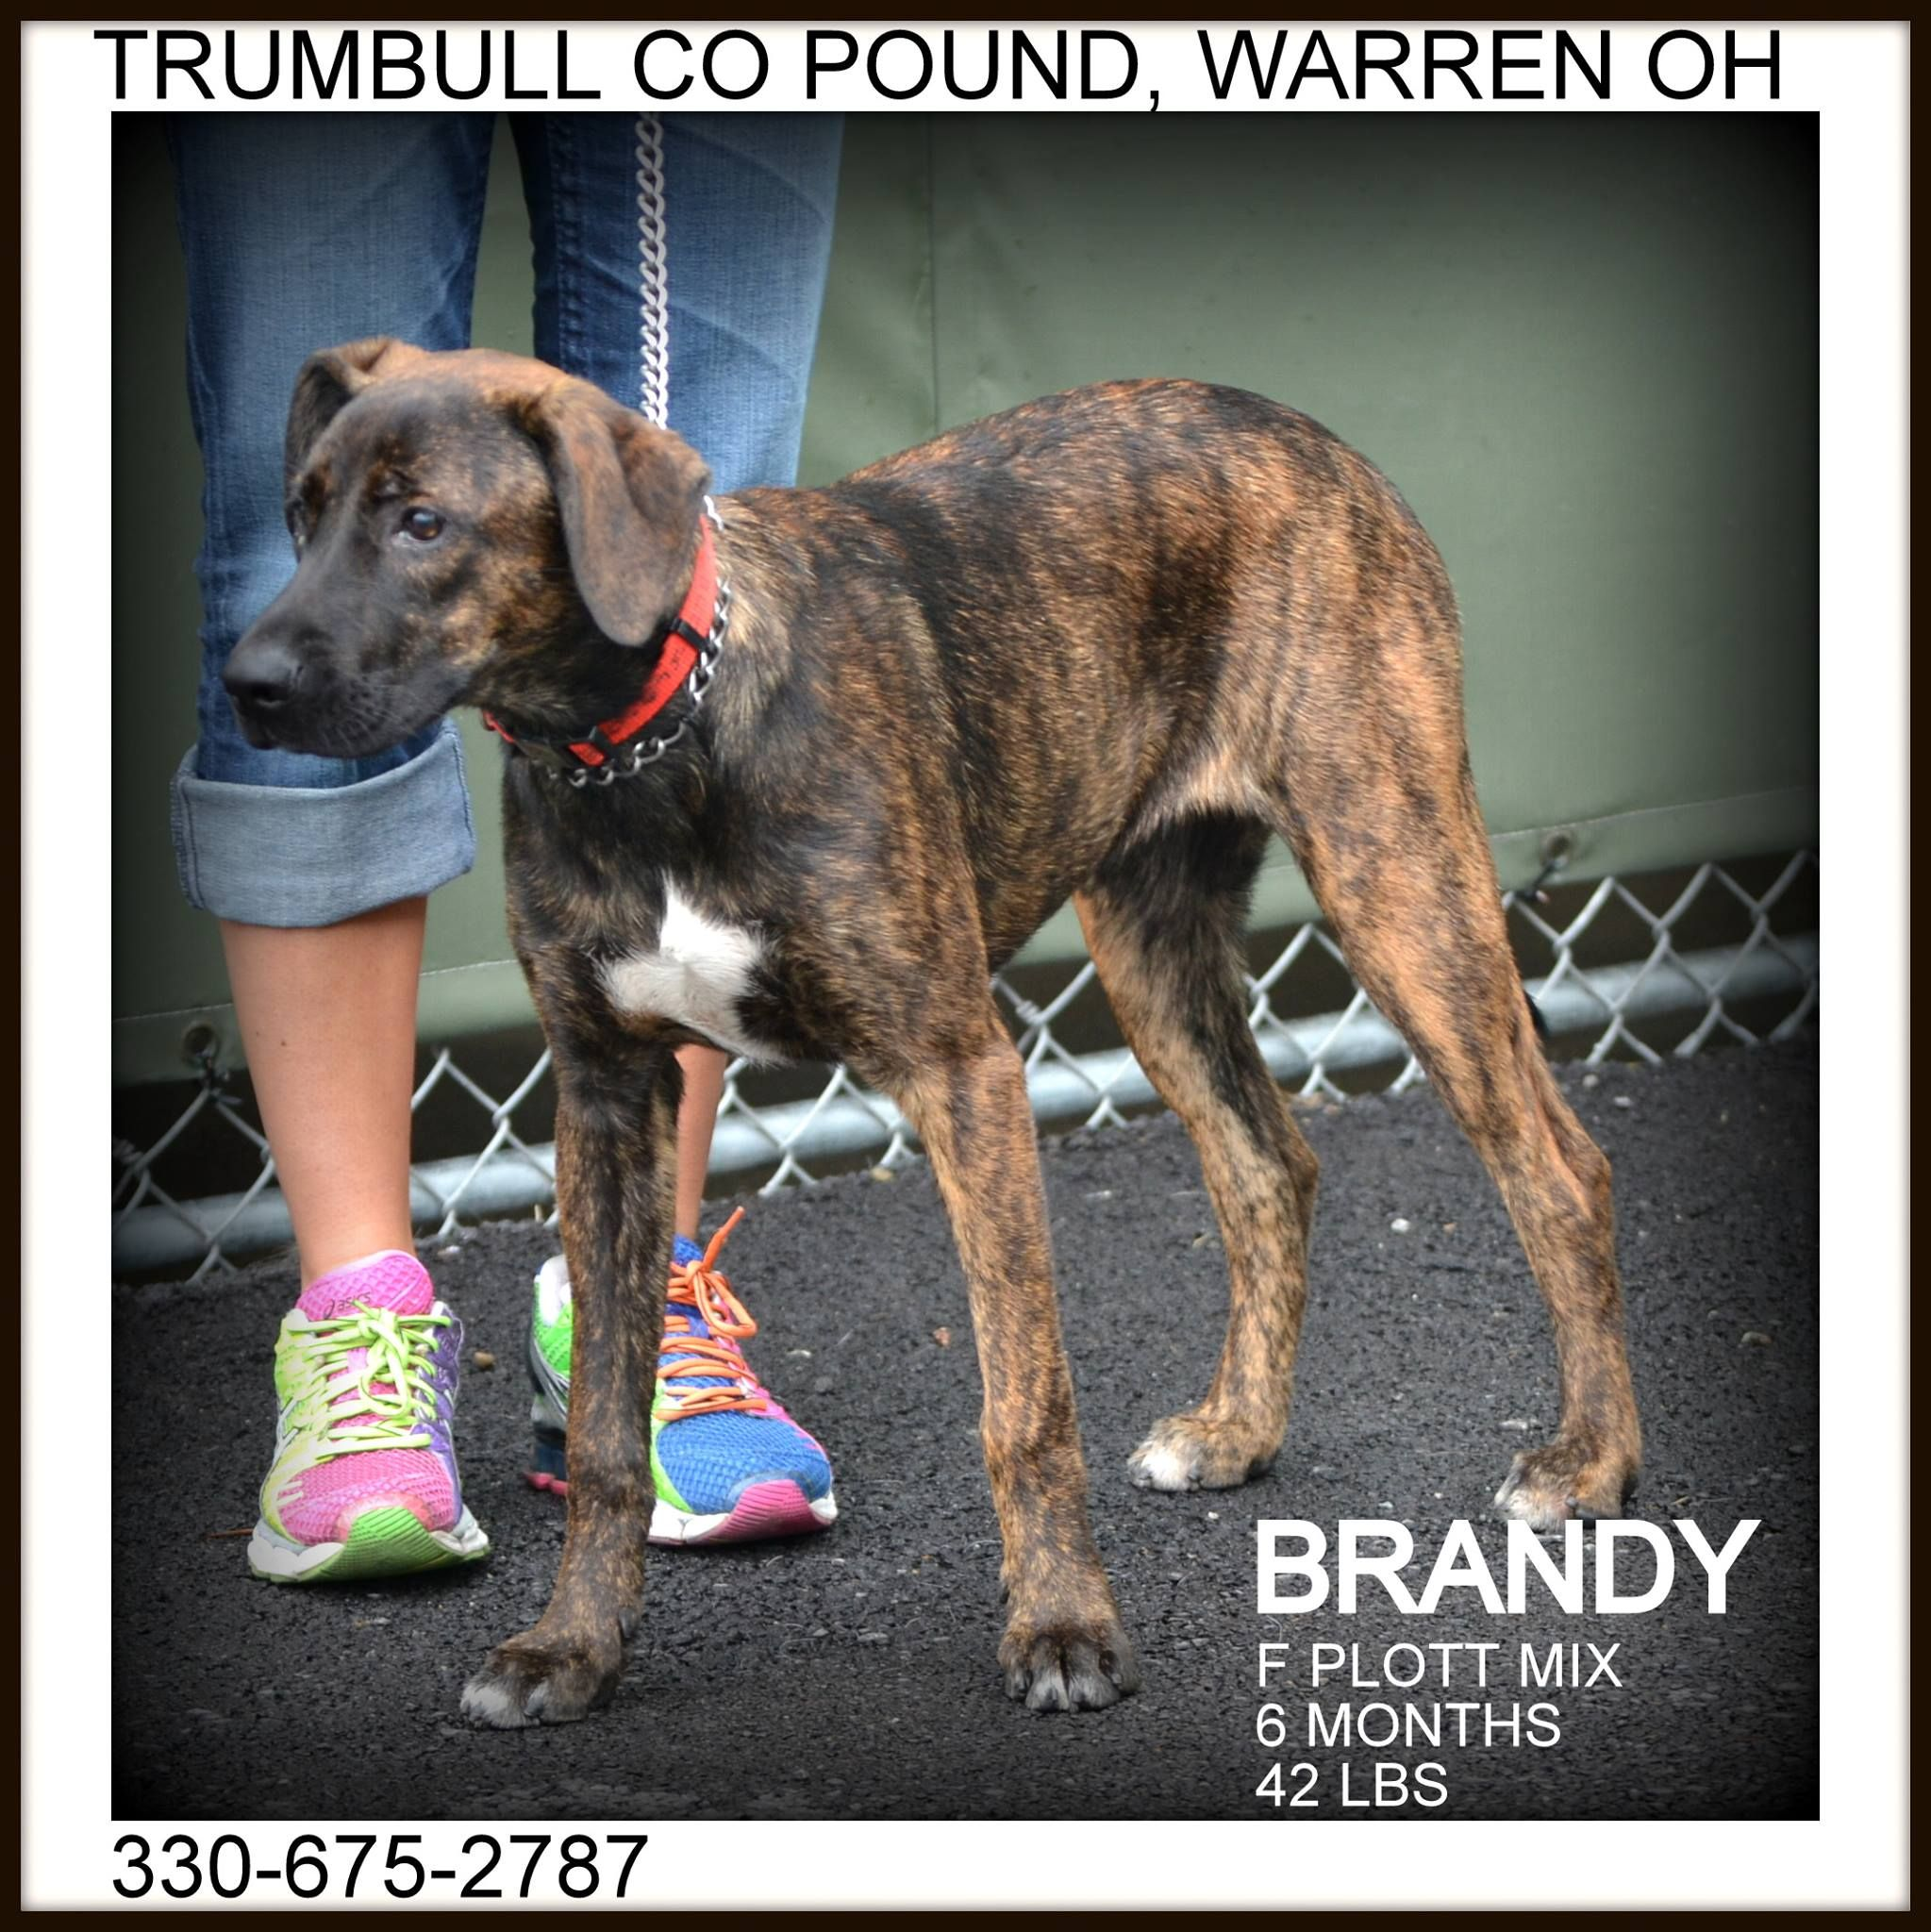 Urgent Please Help Brandy Trumbull County Dog Kennel Warren Ohio Https Www Facebook Com Pages Trumbull County Trumbull County Dog Help Love Your Pet